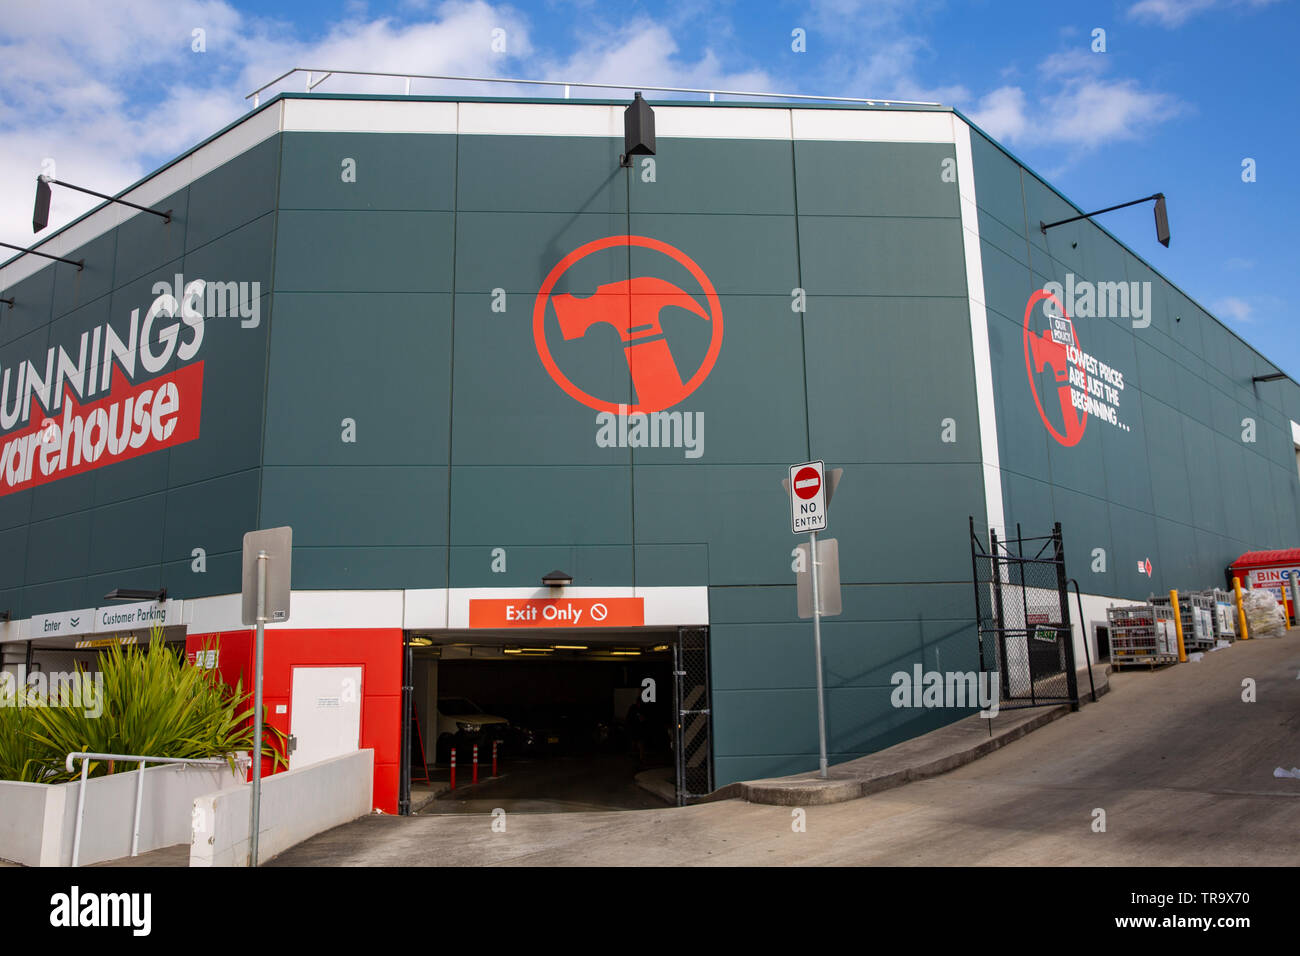 Wesfarmers Stock Photos & Wesfarmers Stock Images - Alamy